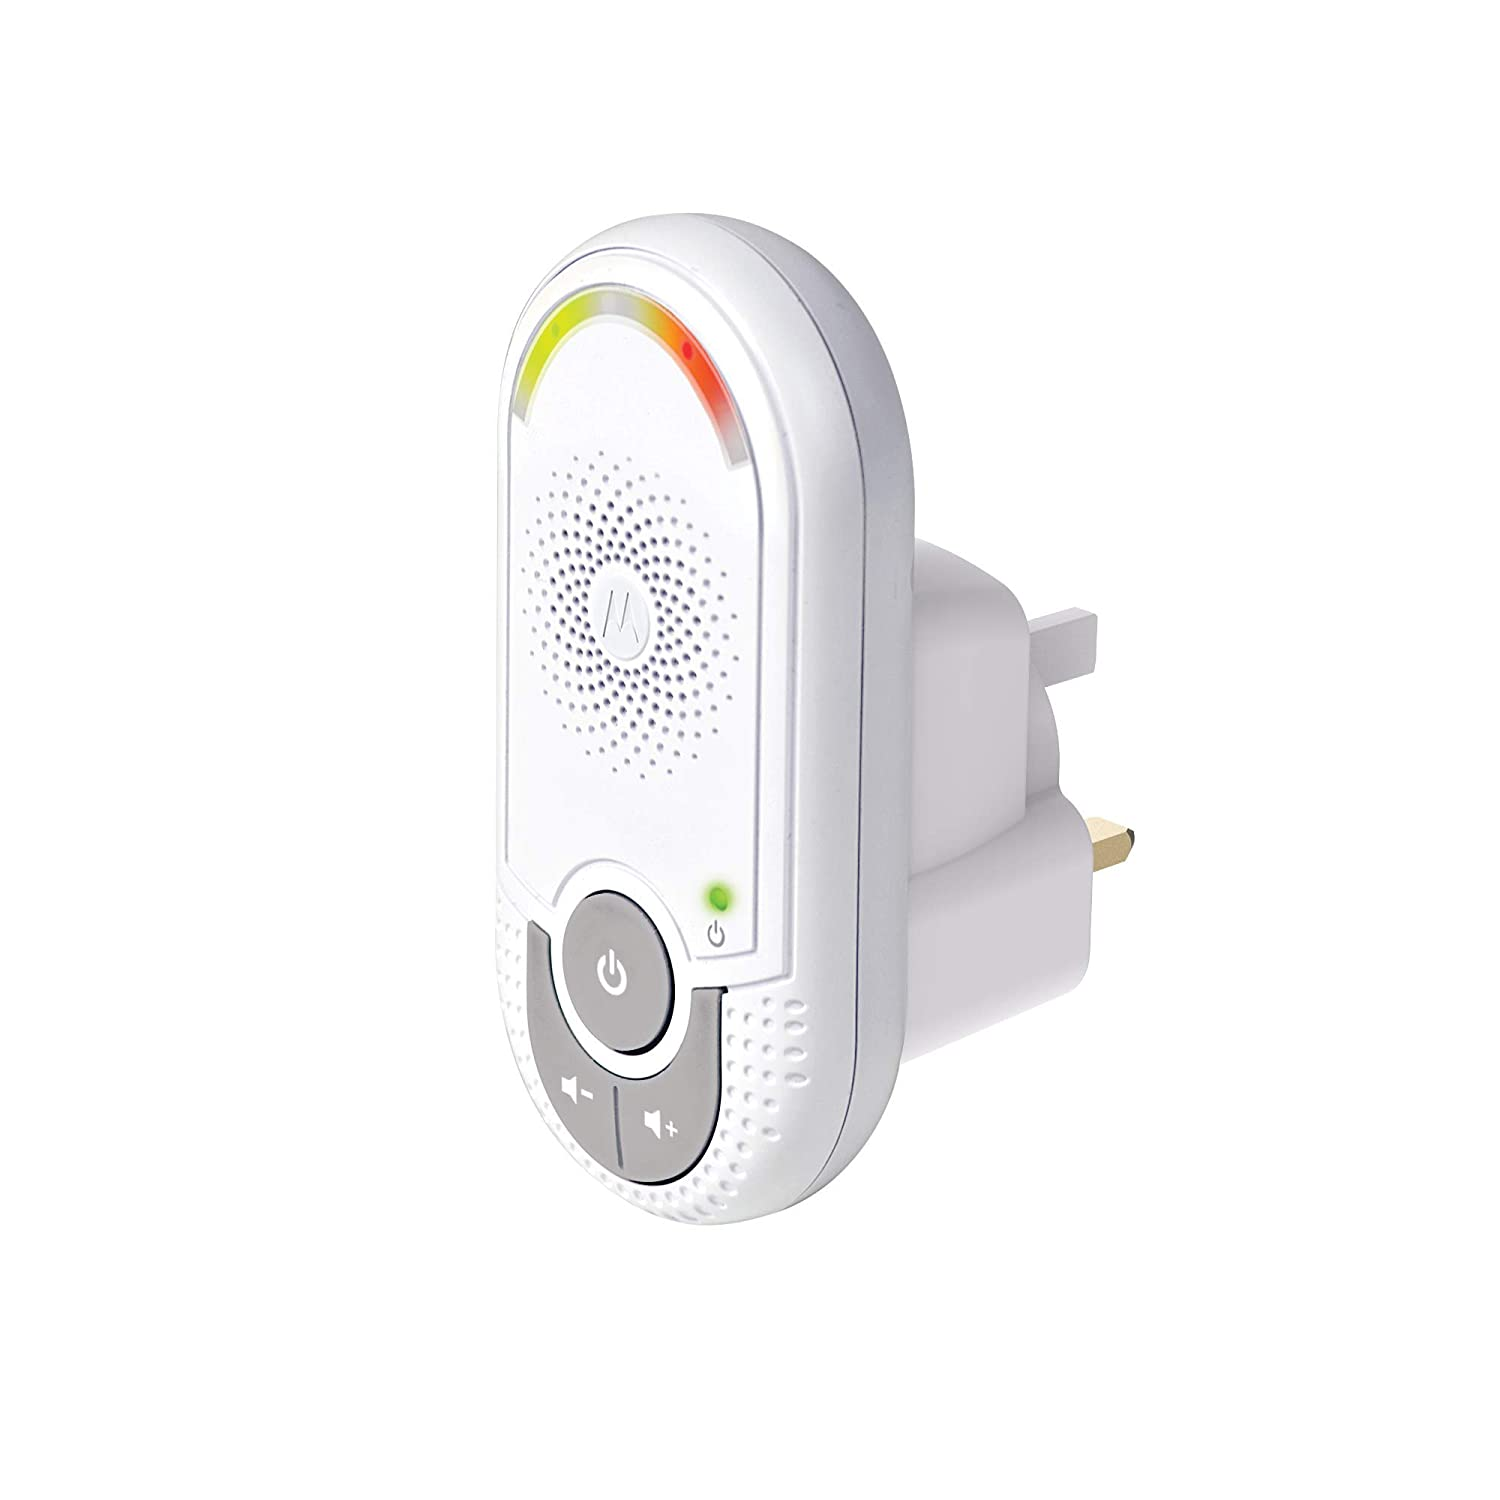 Brand New Motorola MBP8 Digital Audio Baby Monitor With Night Light